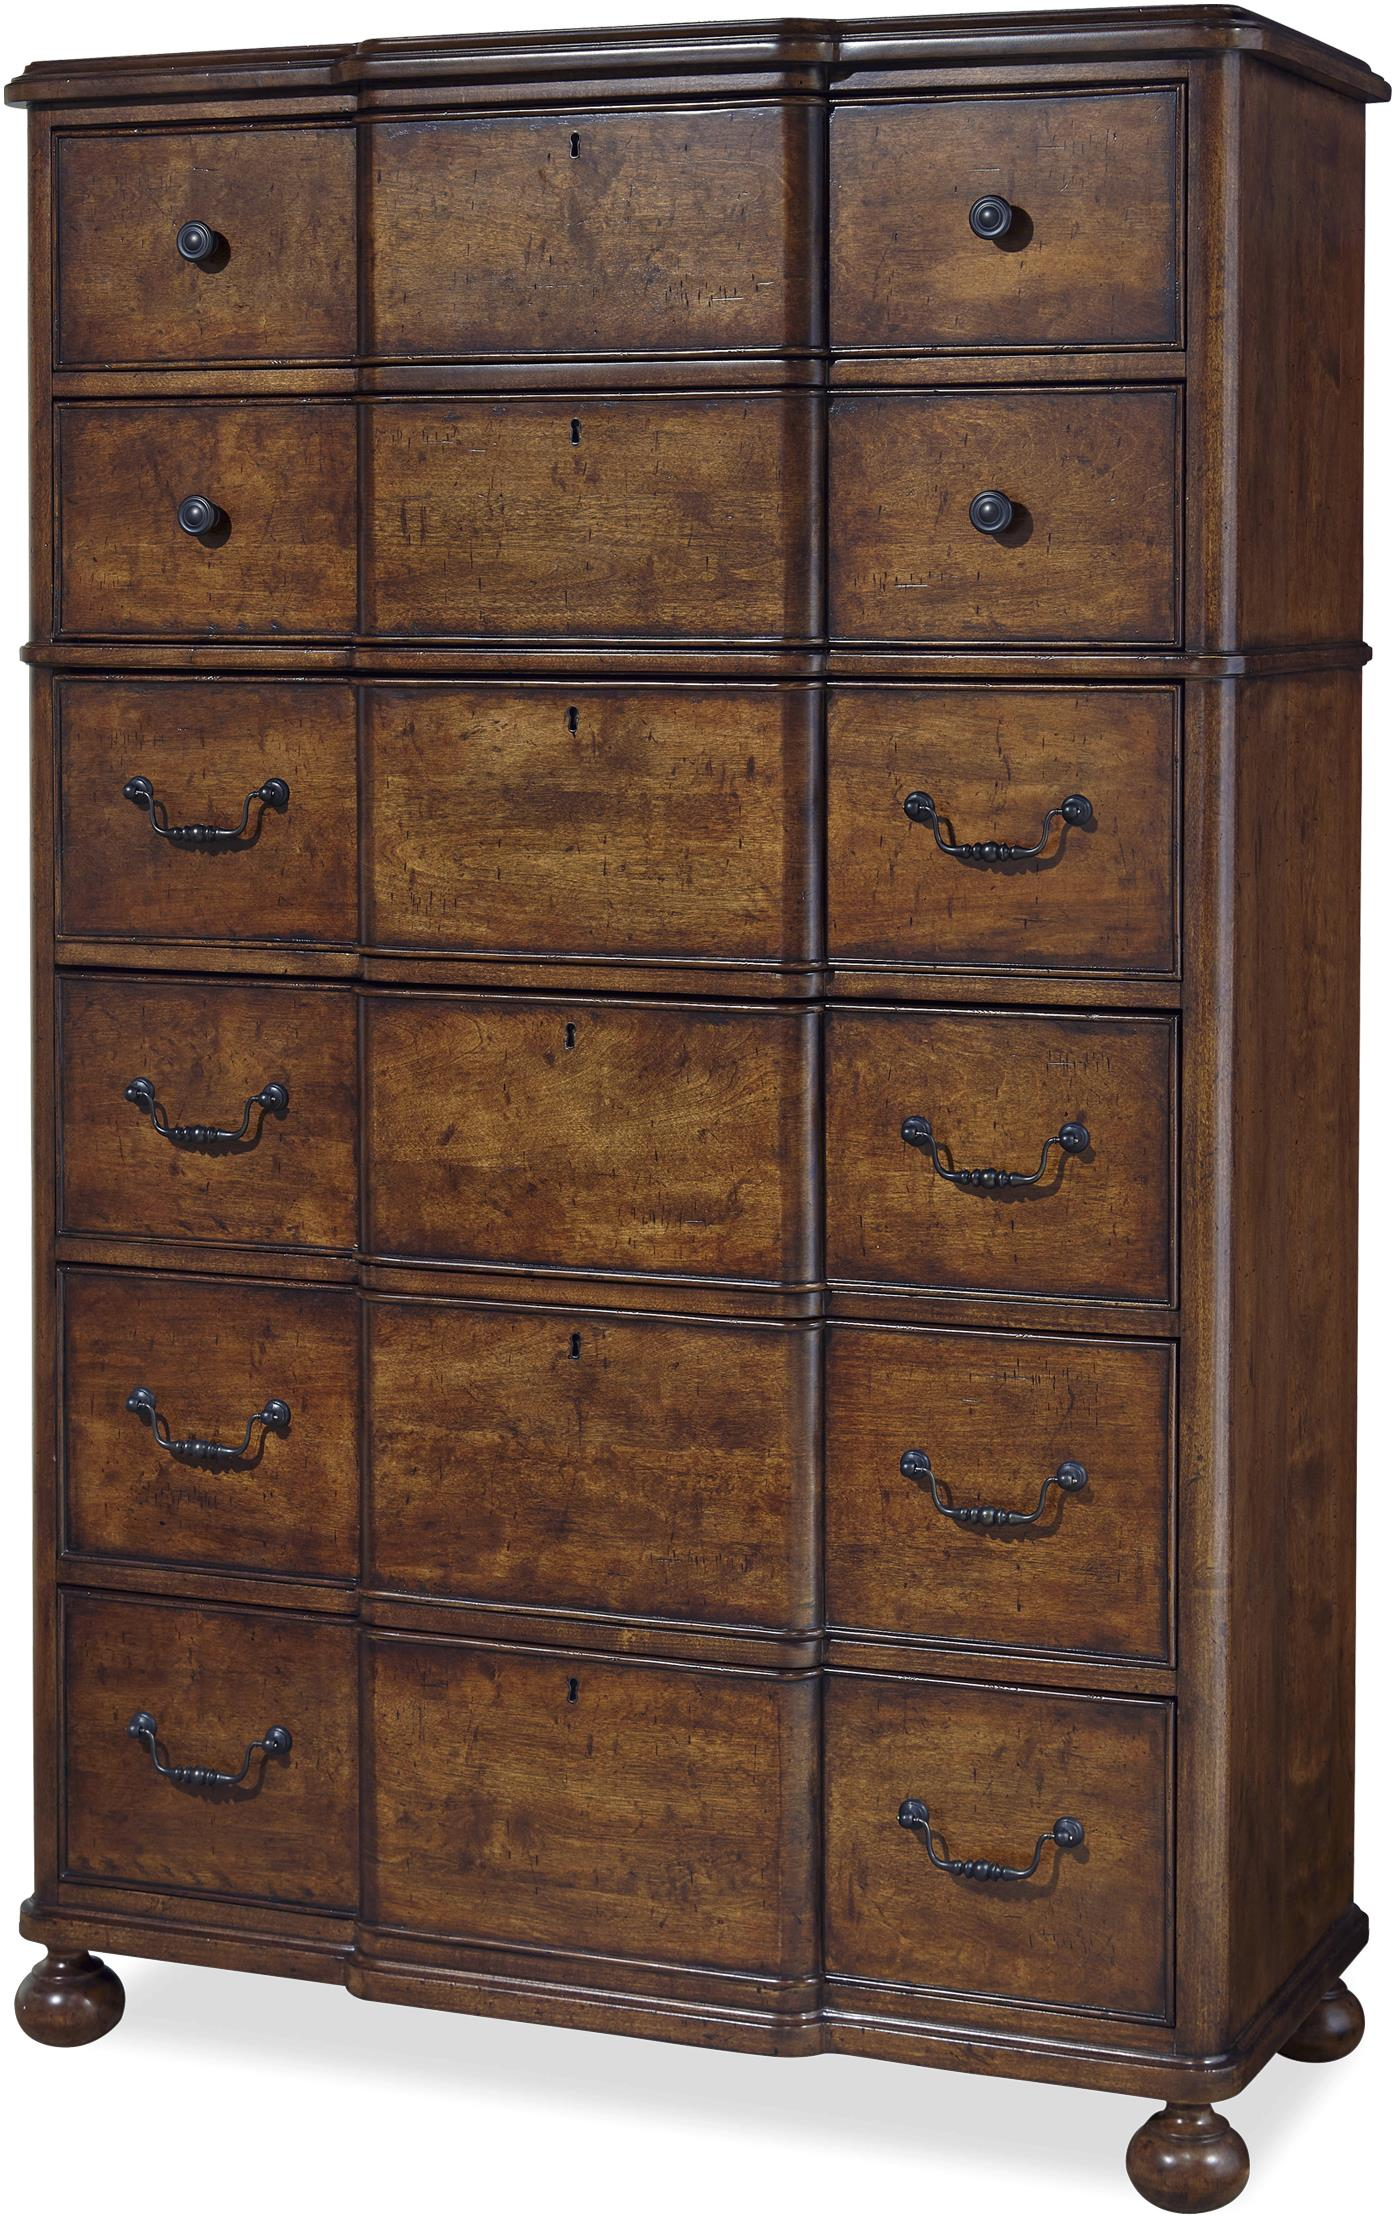 Paula Deen by Universal Dogwood Drawer Chest - Item Number: 596150